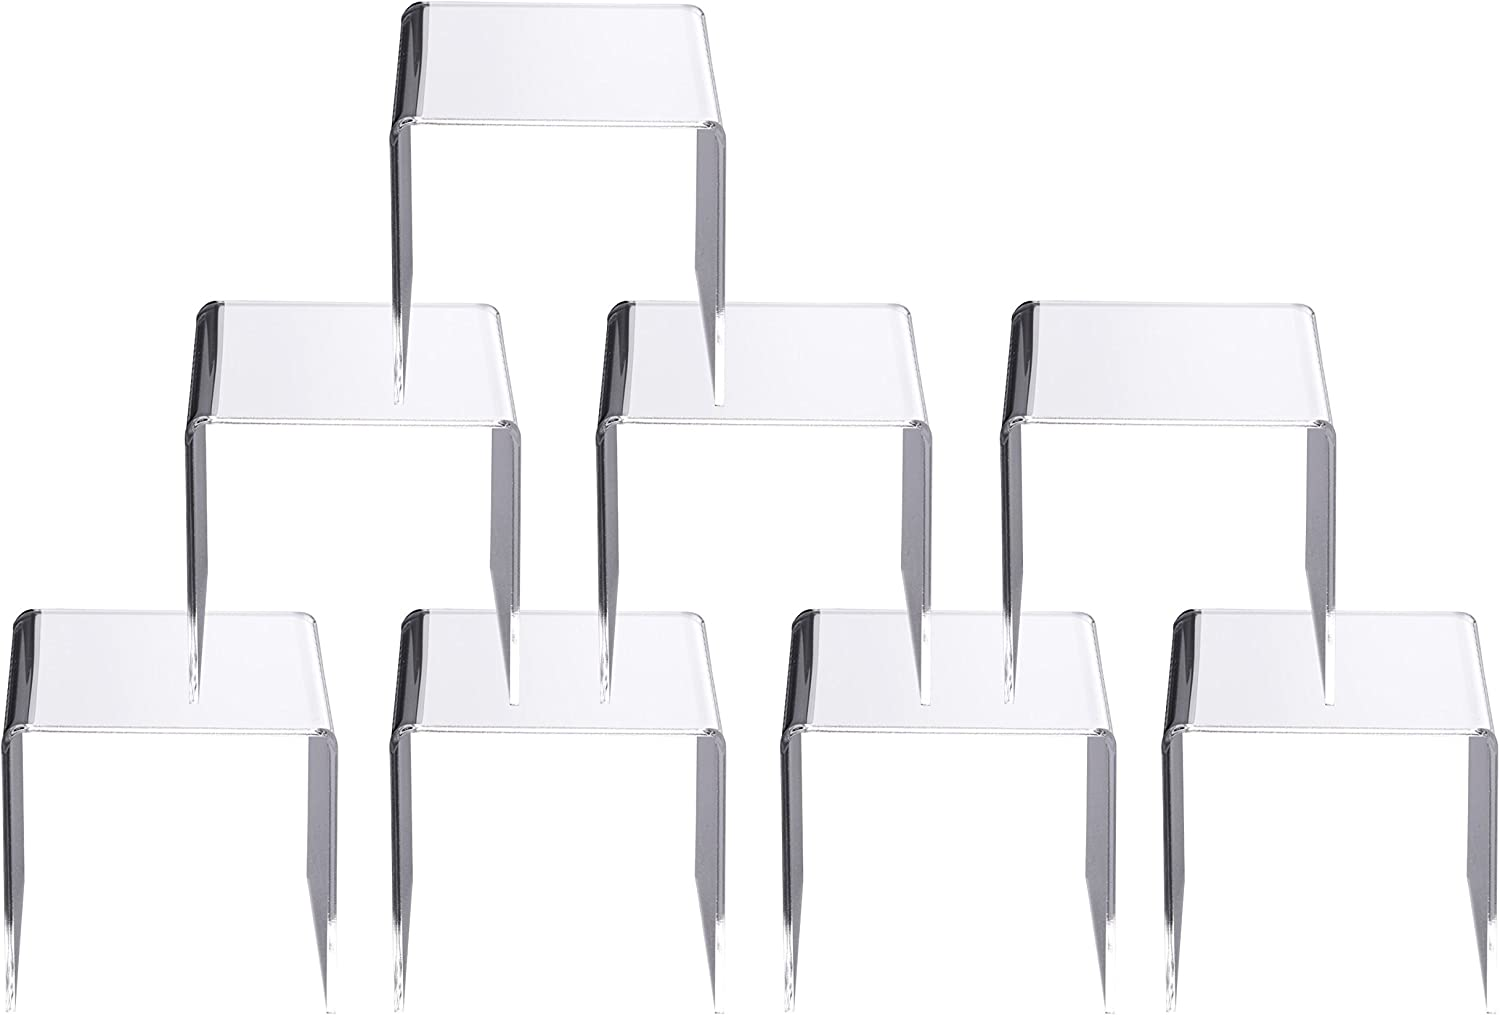 Jusalpha Clear Acrylic Riser Stand Lot of 8 (6x6x6 Inches)